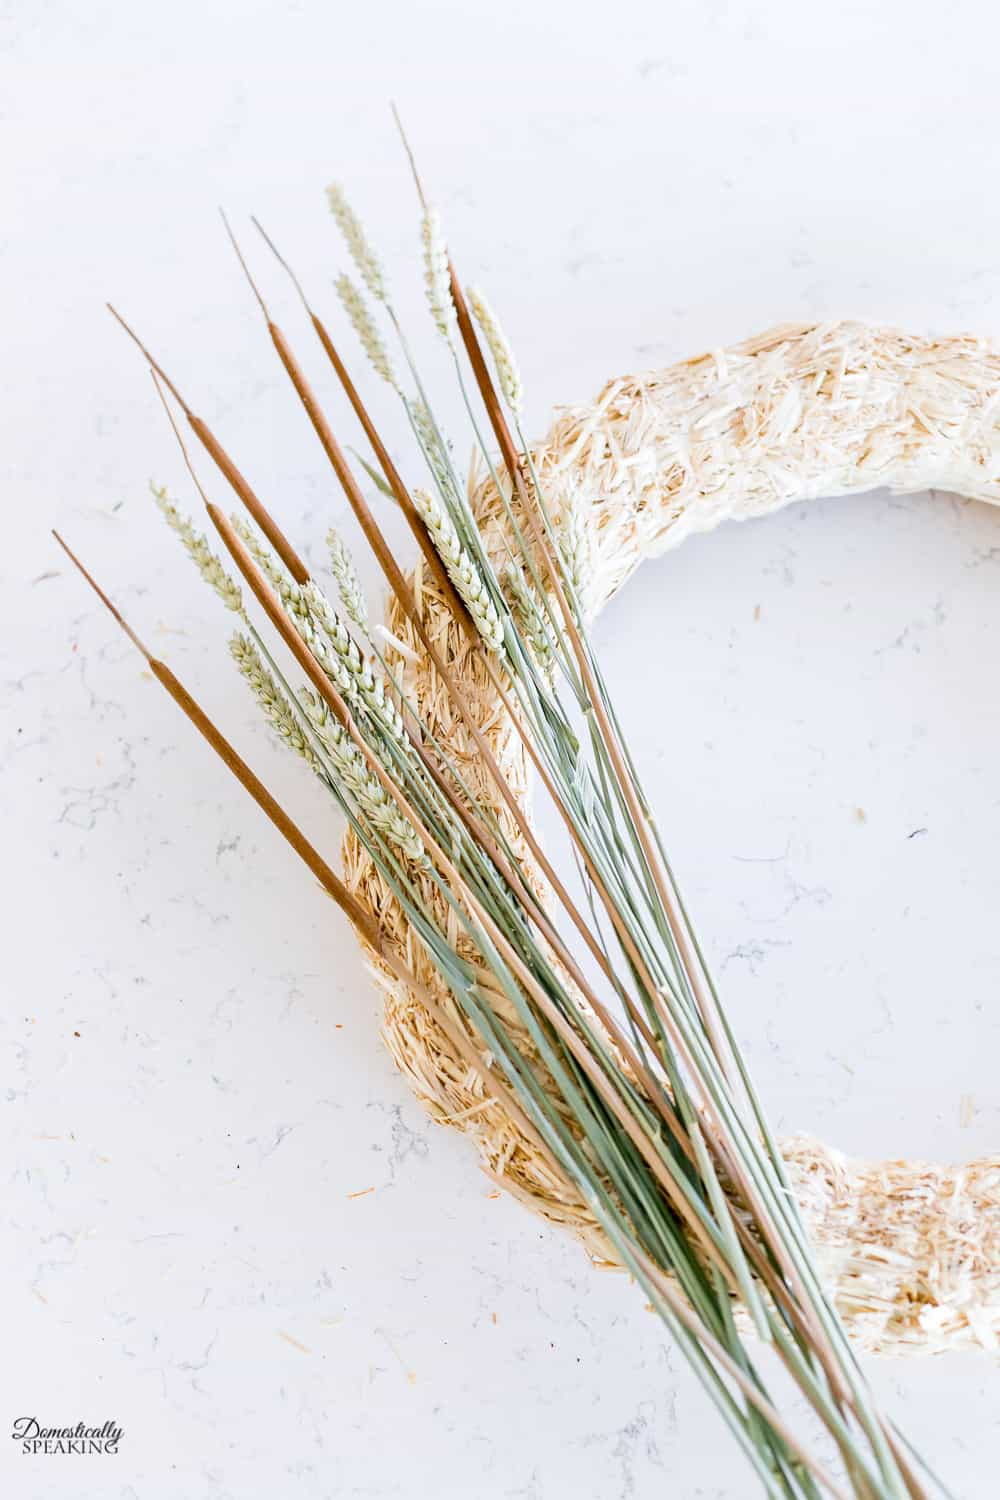 Adding cattails and wheat to the fall wreath.